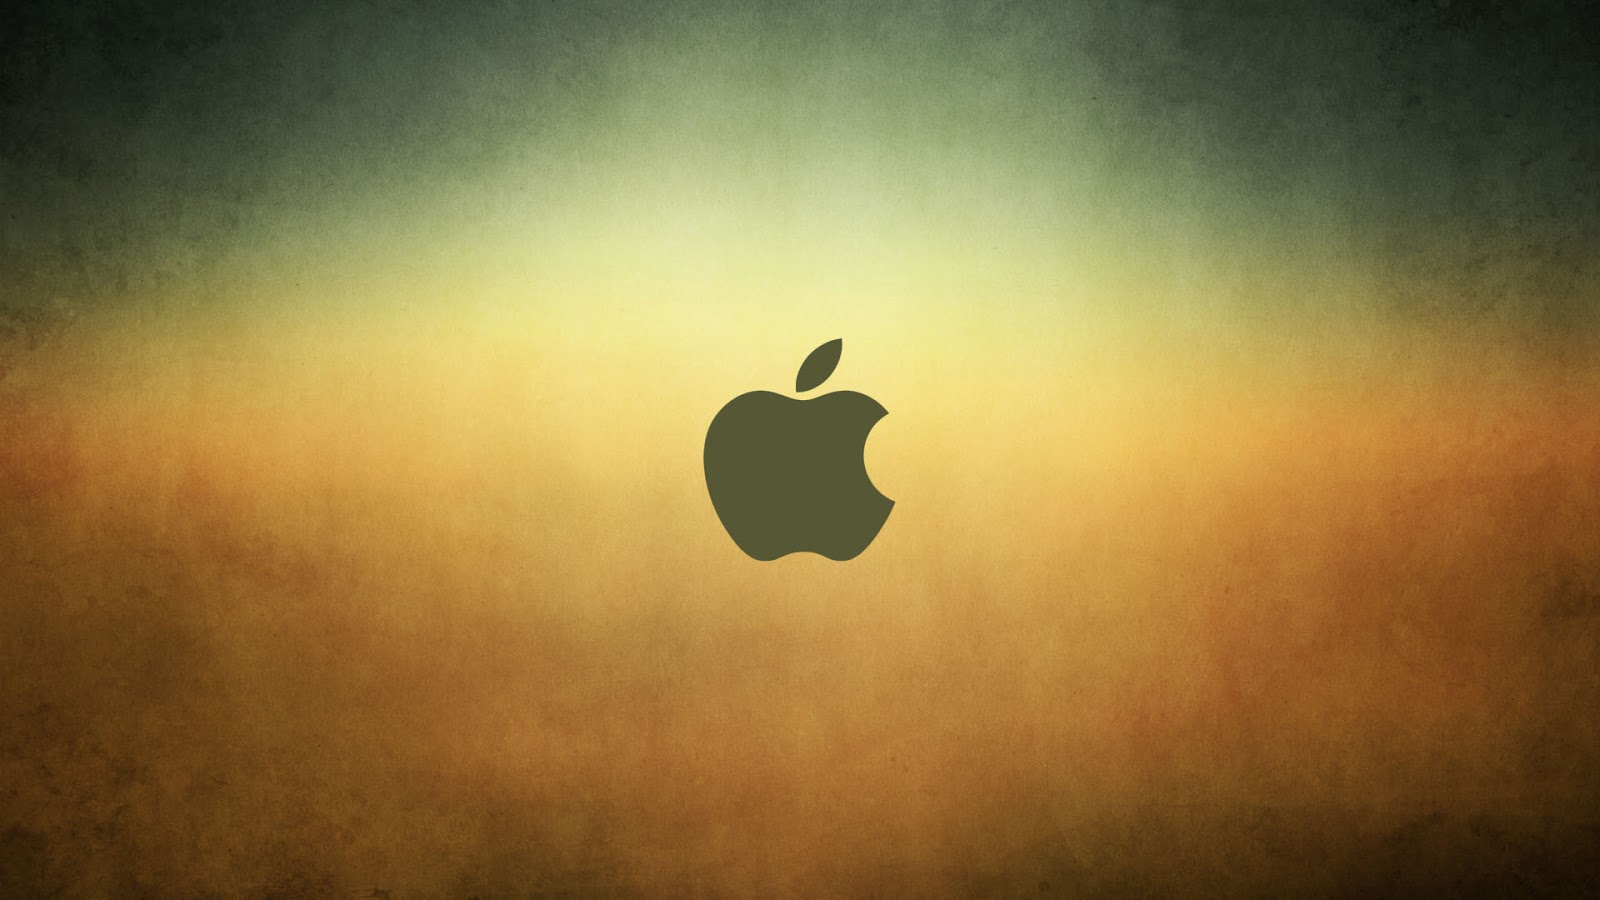 Wallpaper Apple New 2013 | Wallpaper Full HD Wide | Wallpaperhd360